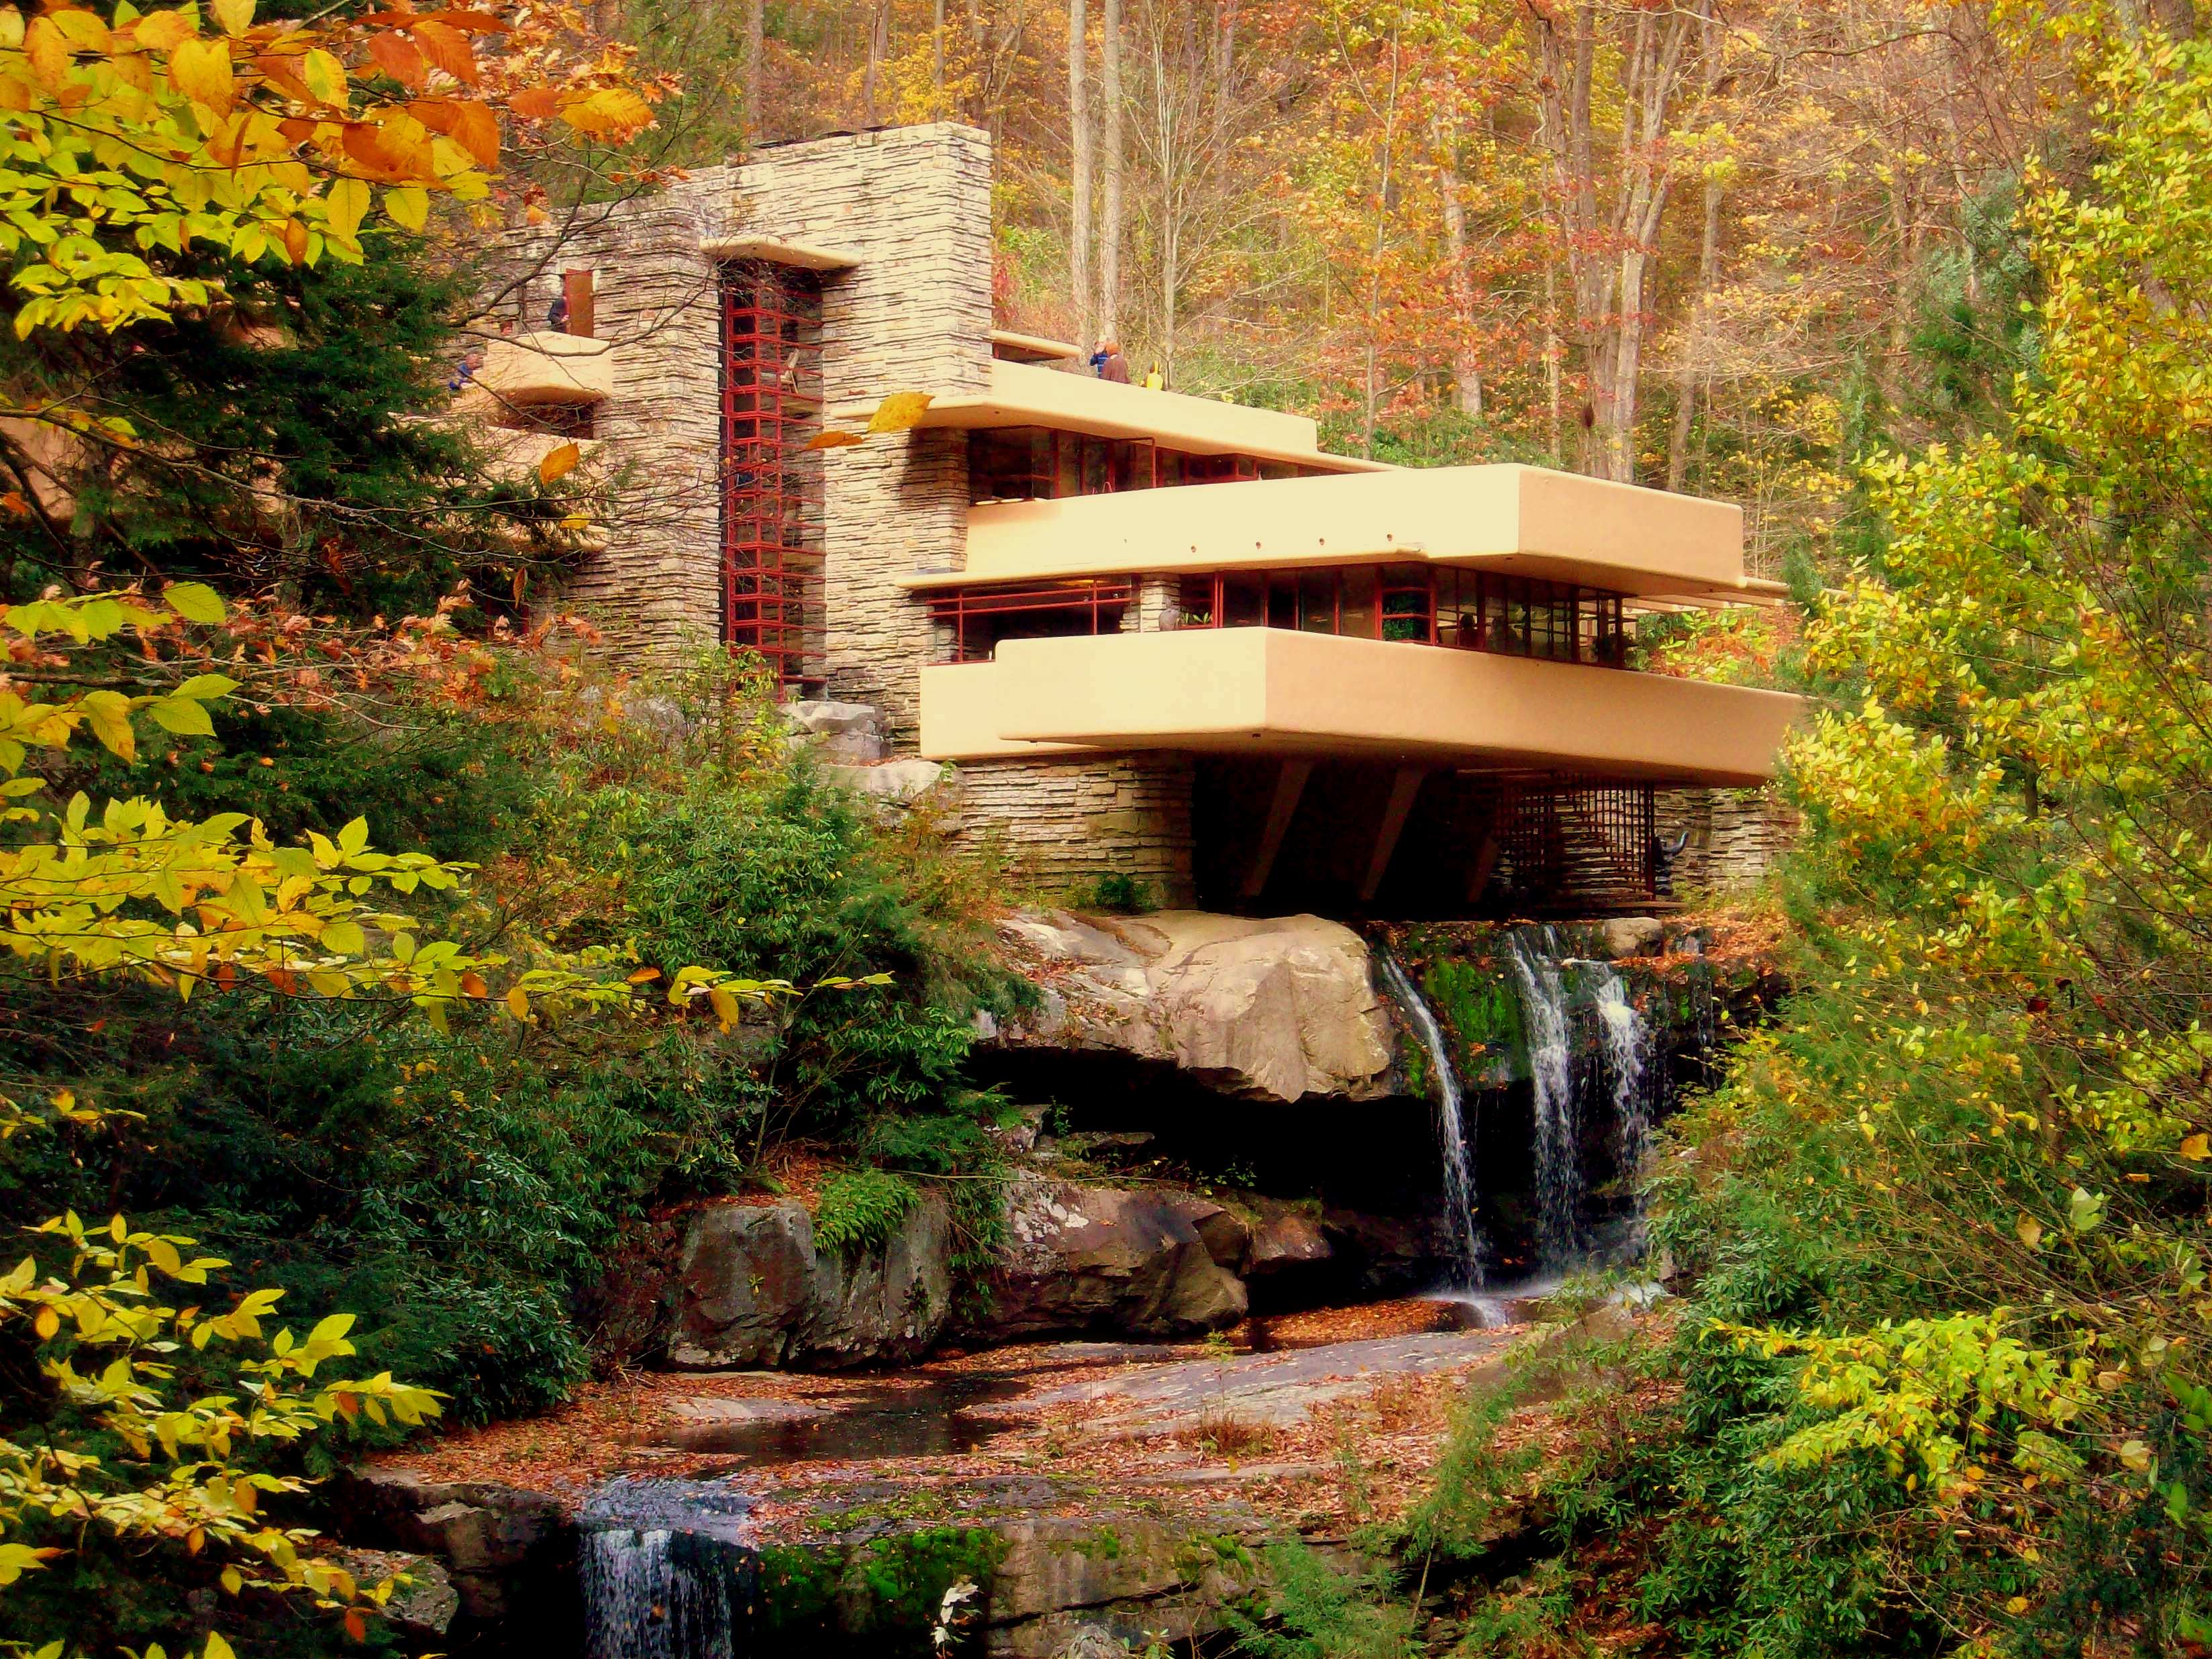 Fallingwater 1937 by Frank Lloyd Wright 3296x2472